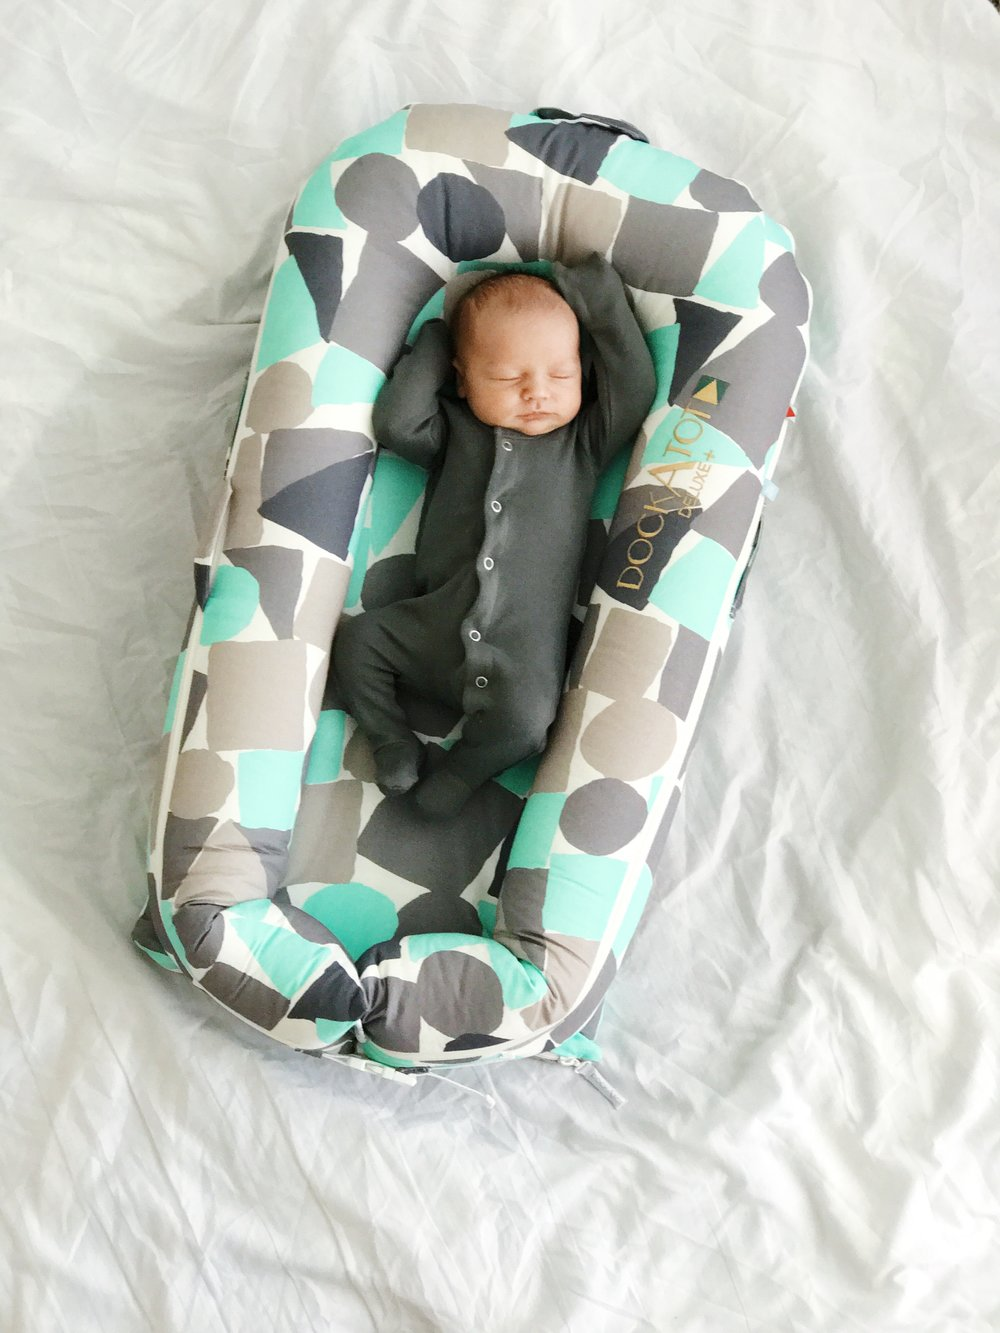 DOCATOT - This is a legit baby whisperer. Read about our experience with the Docatot here!